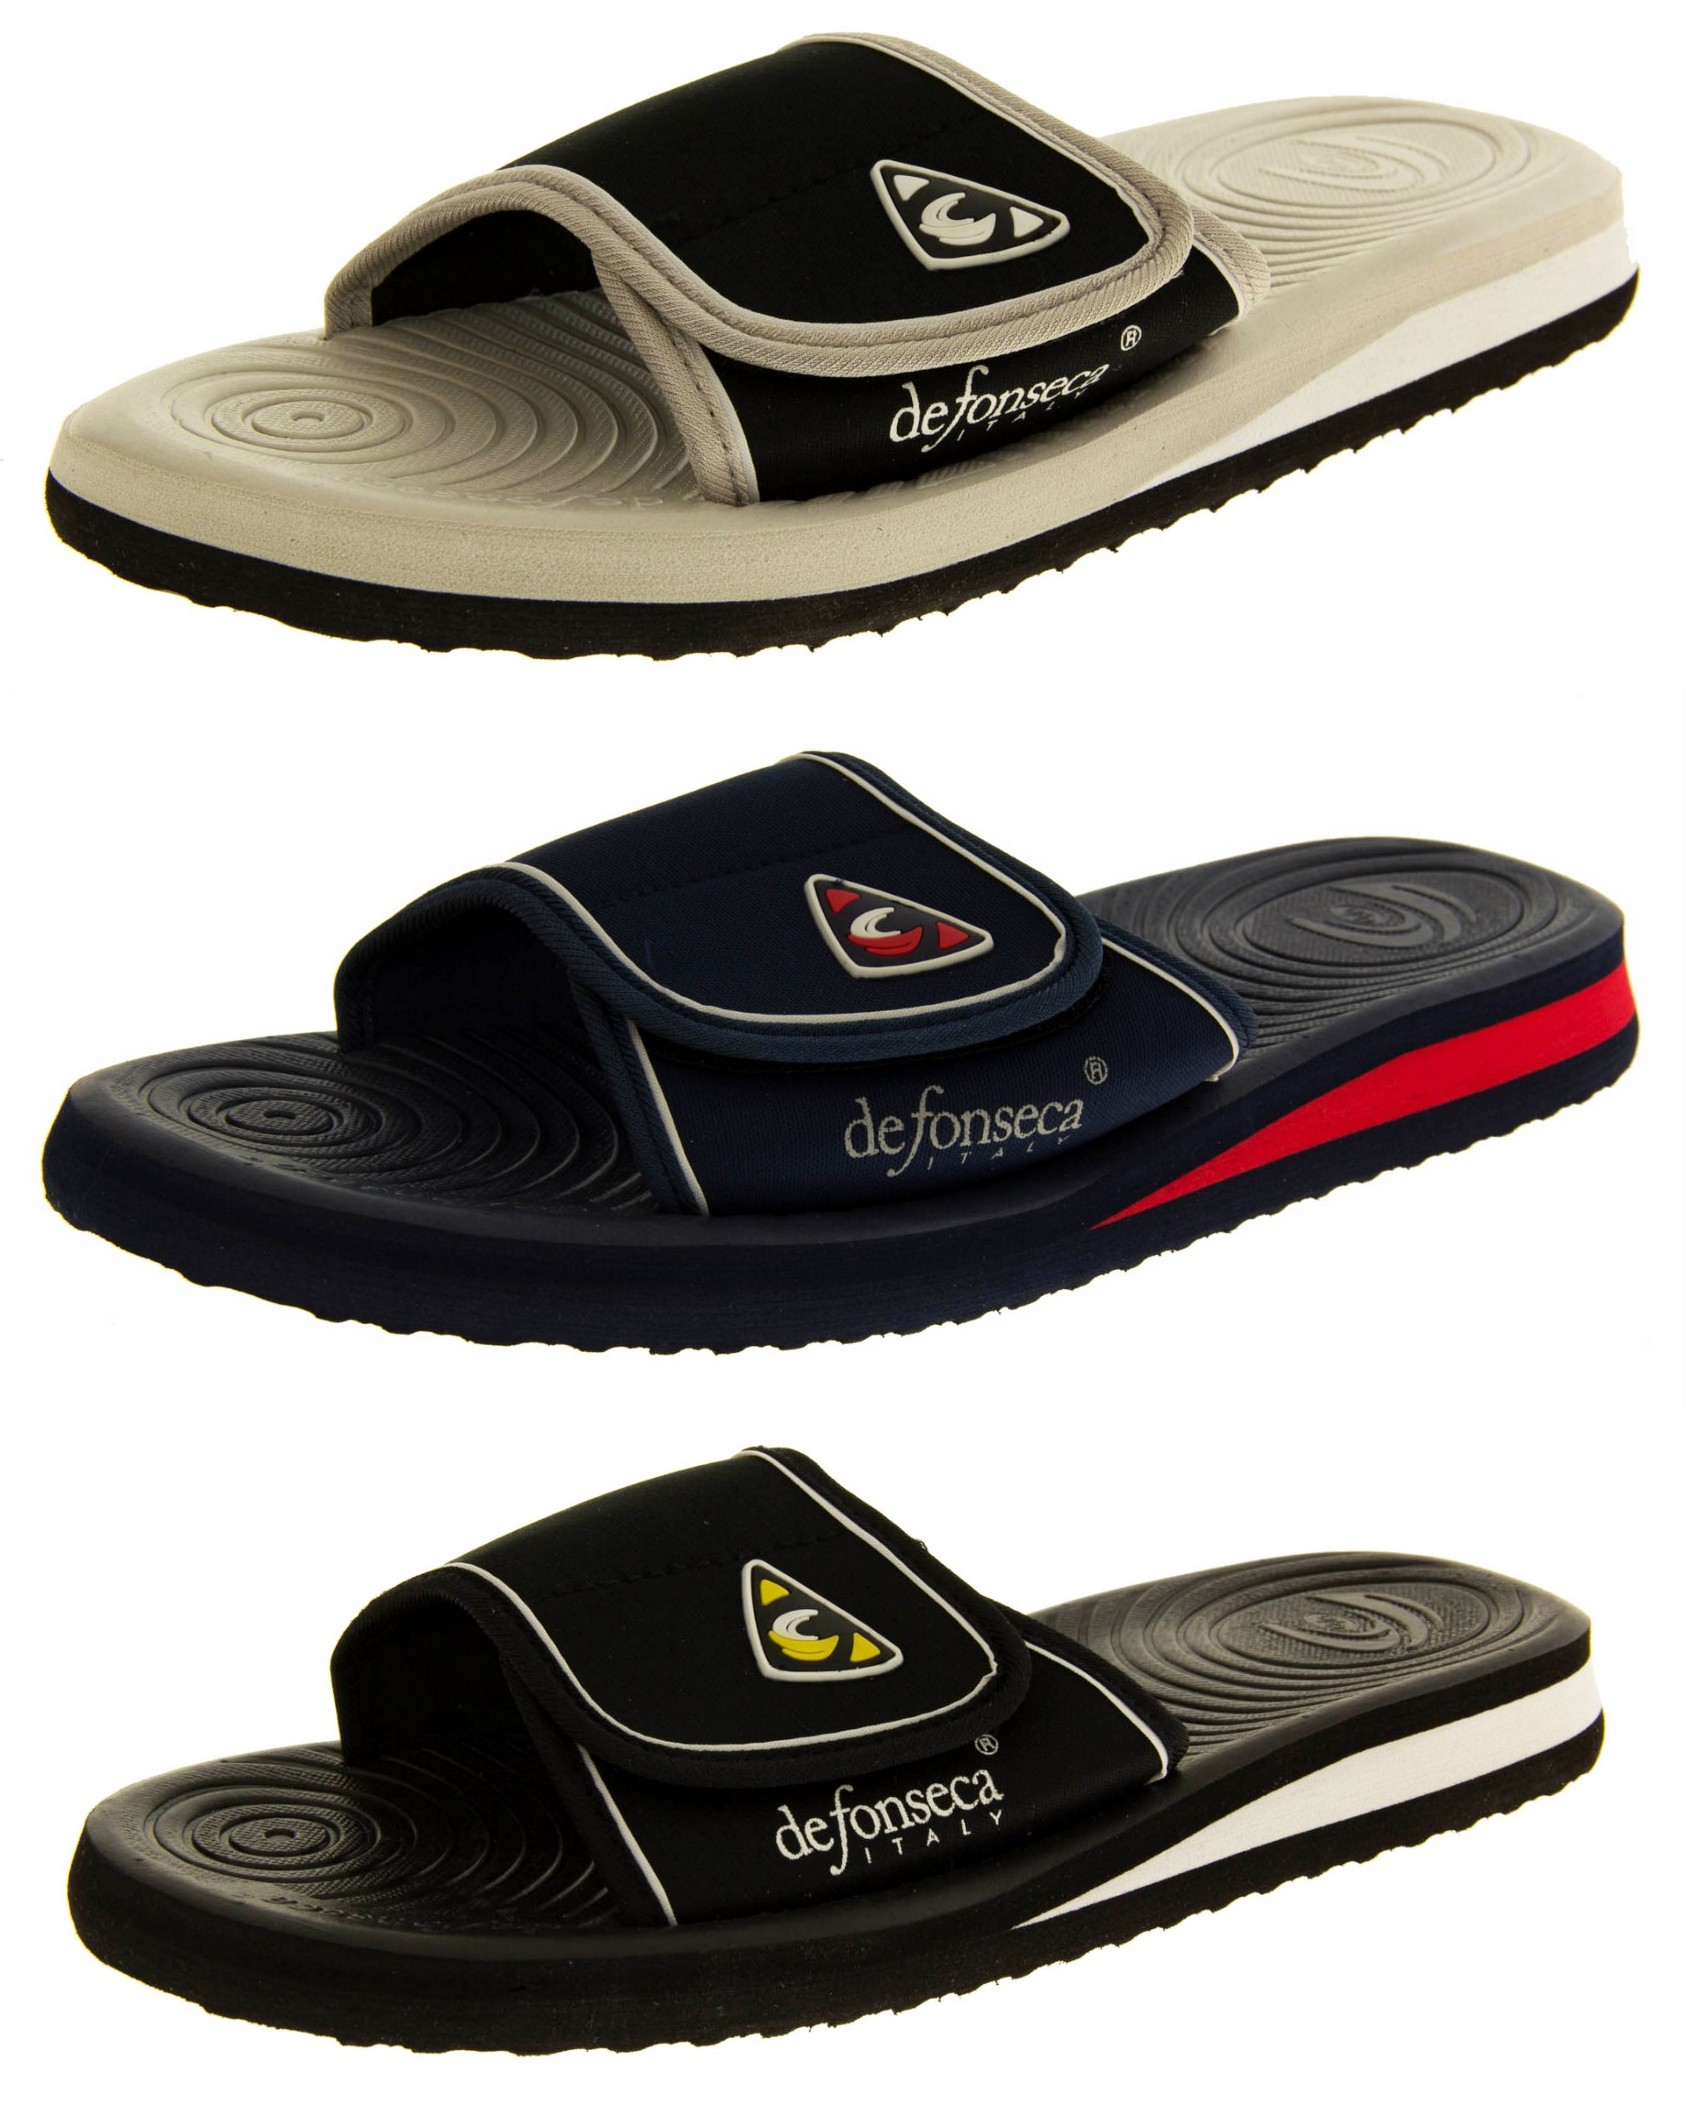 Mens Summer Flip Flops Sandals Beach and Pool Shoes Size 6 ...